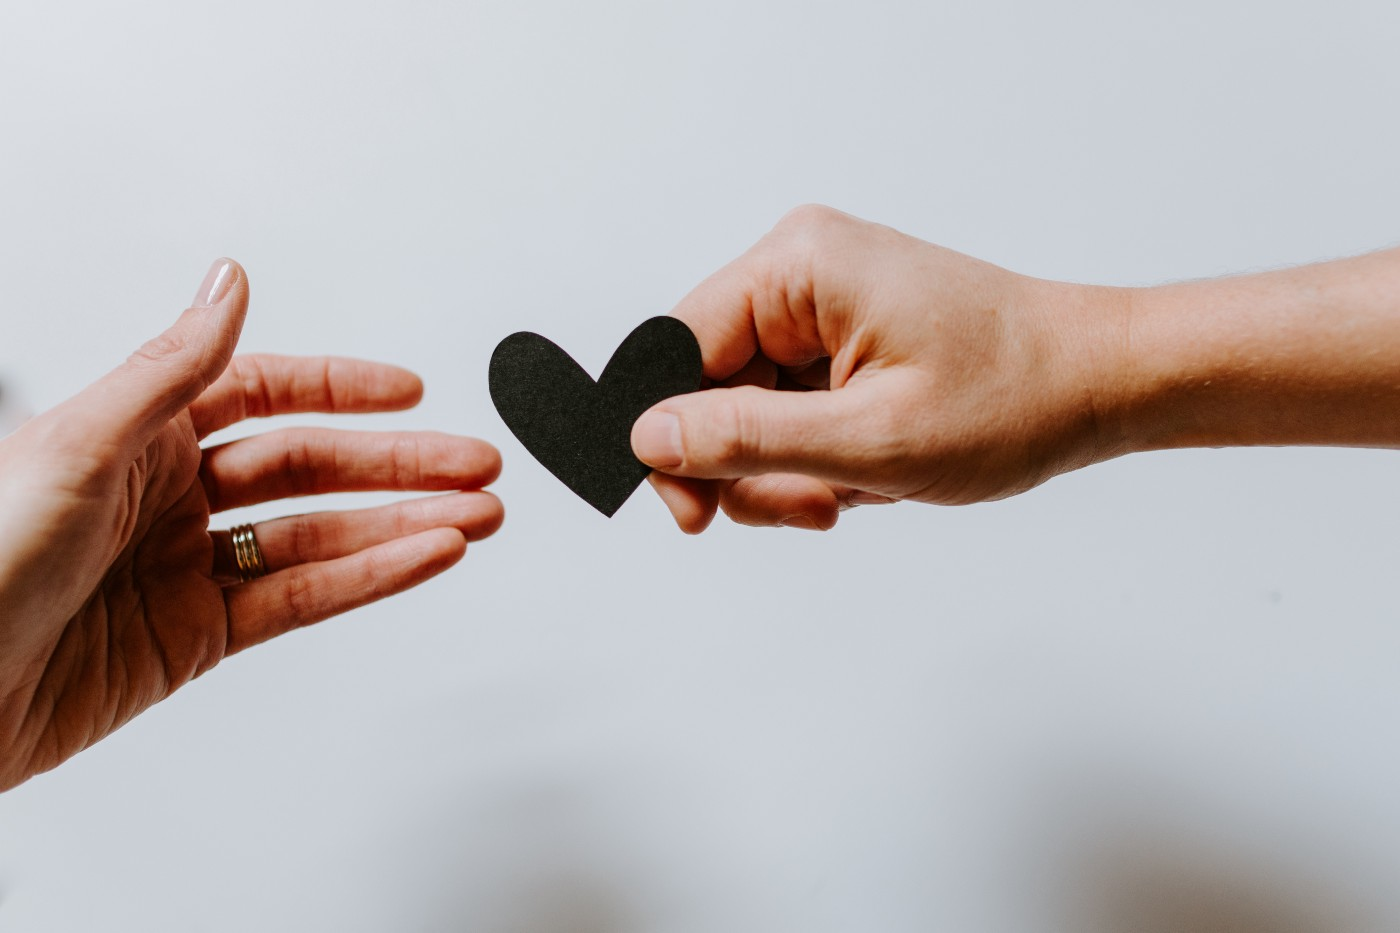 One person hands another a black paper heart.